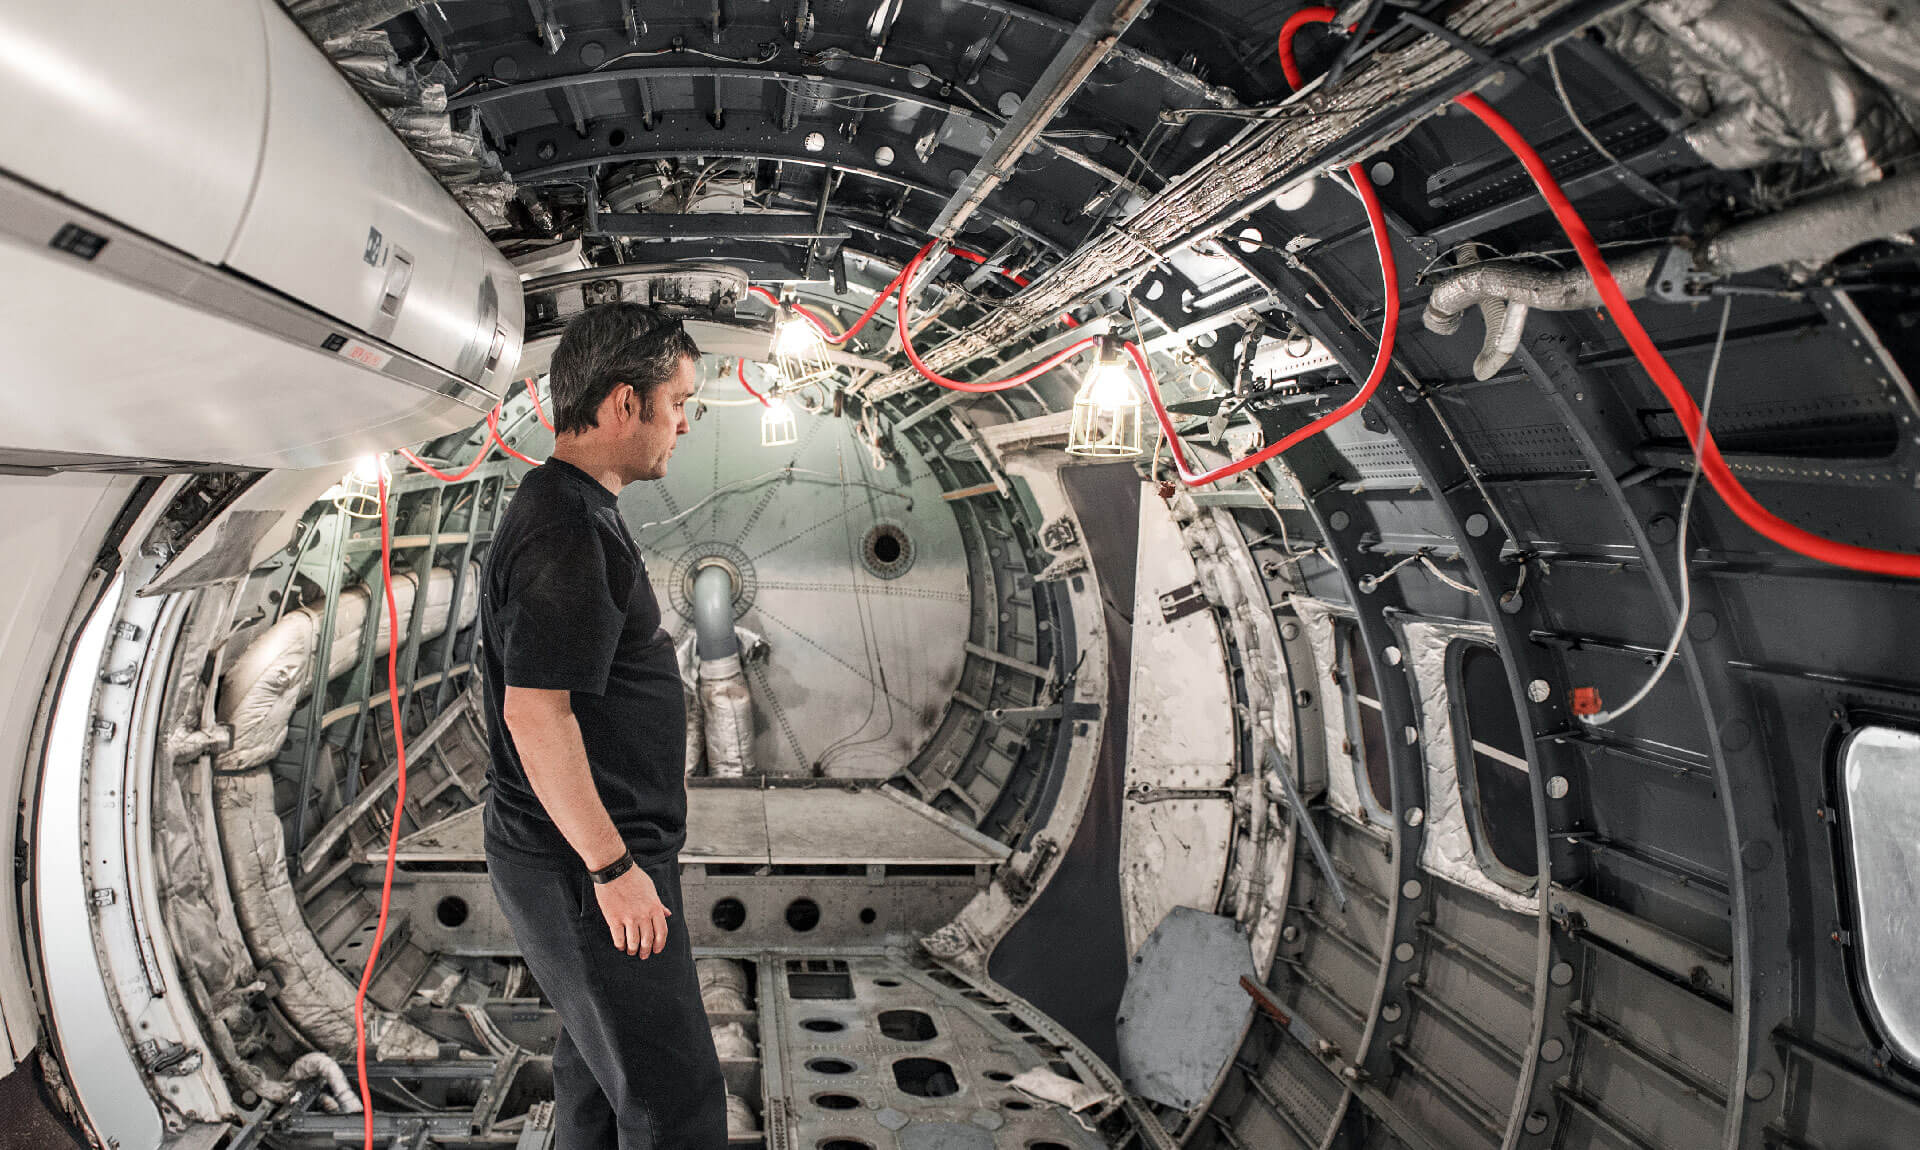 Man inside cargo area of an airplane